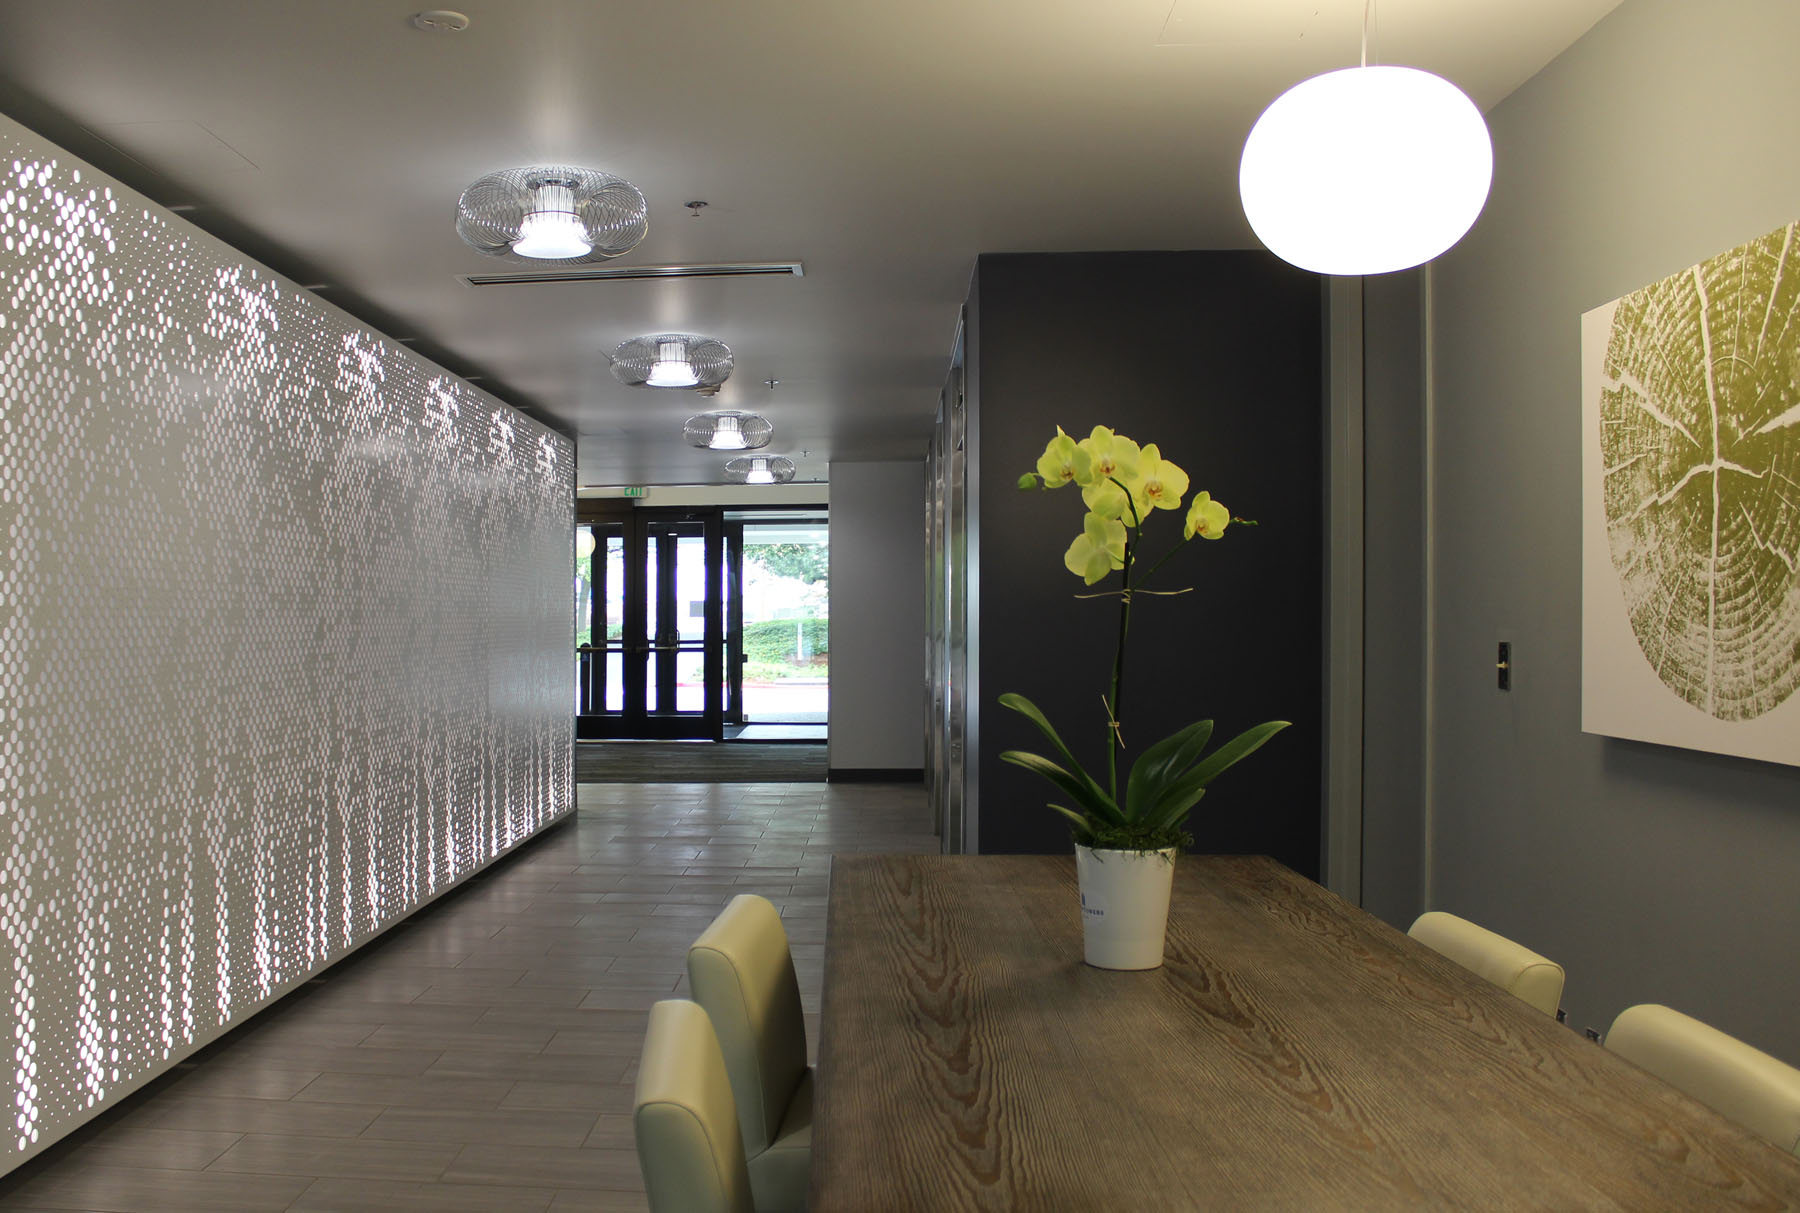 Arktura Graphic Perf® Standard Folia installed in lobby.